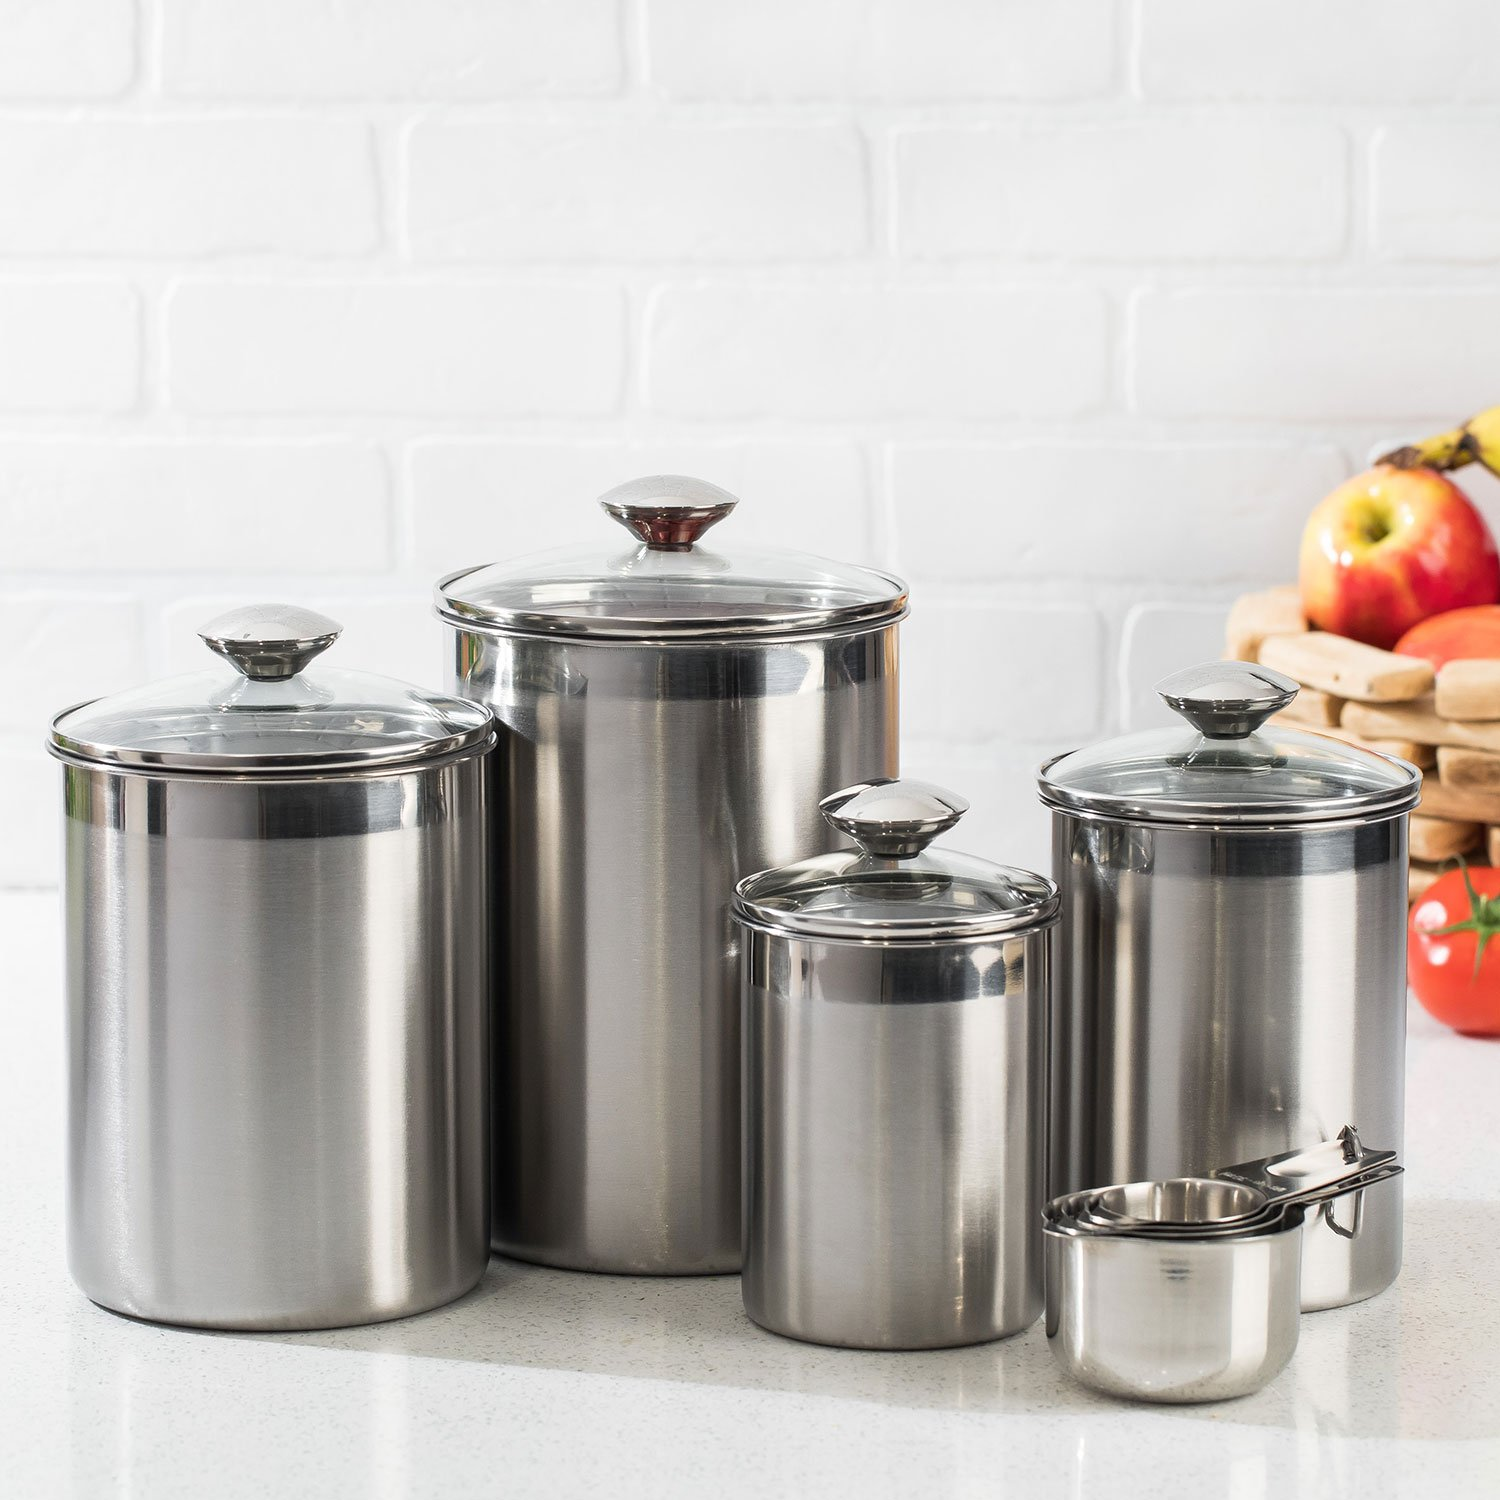 stainless steel canister sets kitchen silveronyx canister set stainless steel beautiful canister sets for kitchen 698257181896 ebay 5585